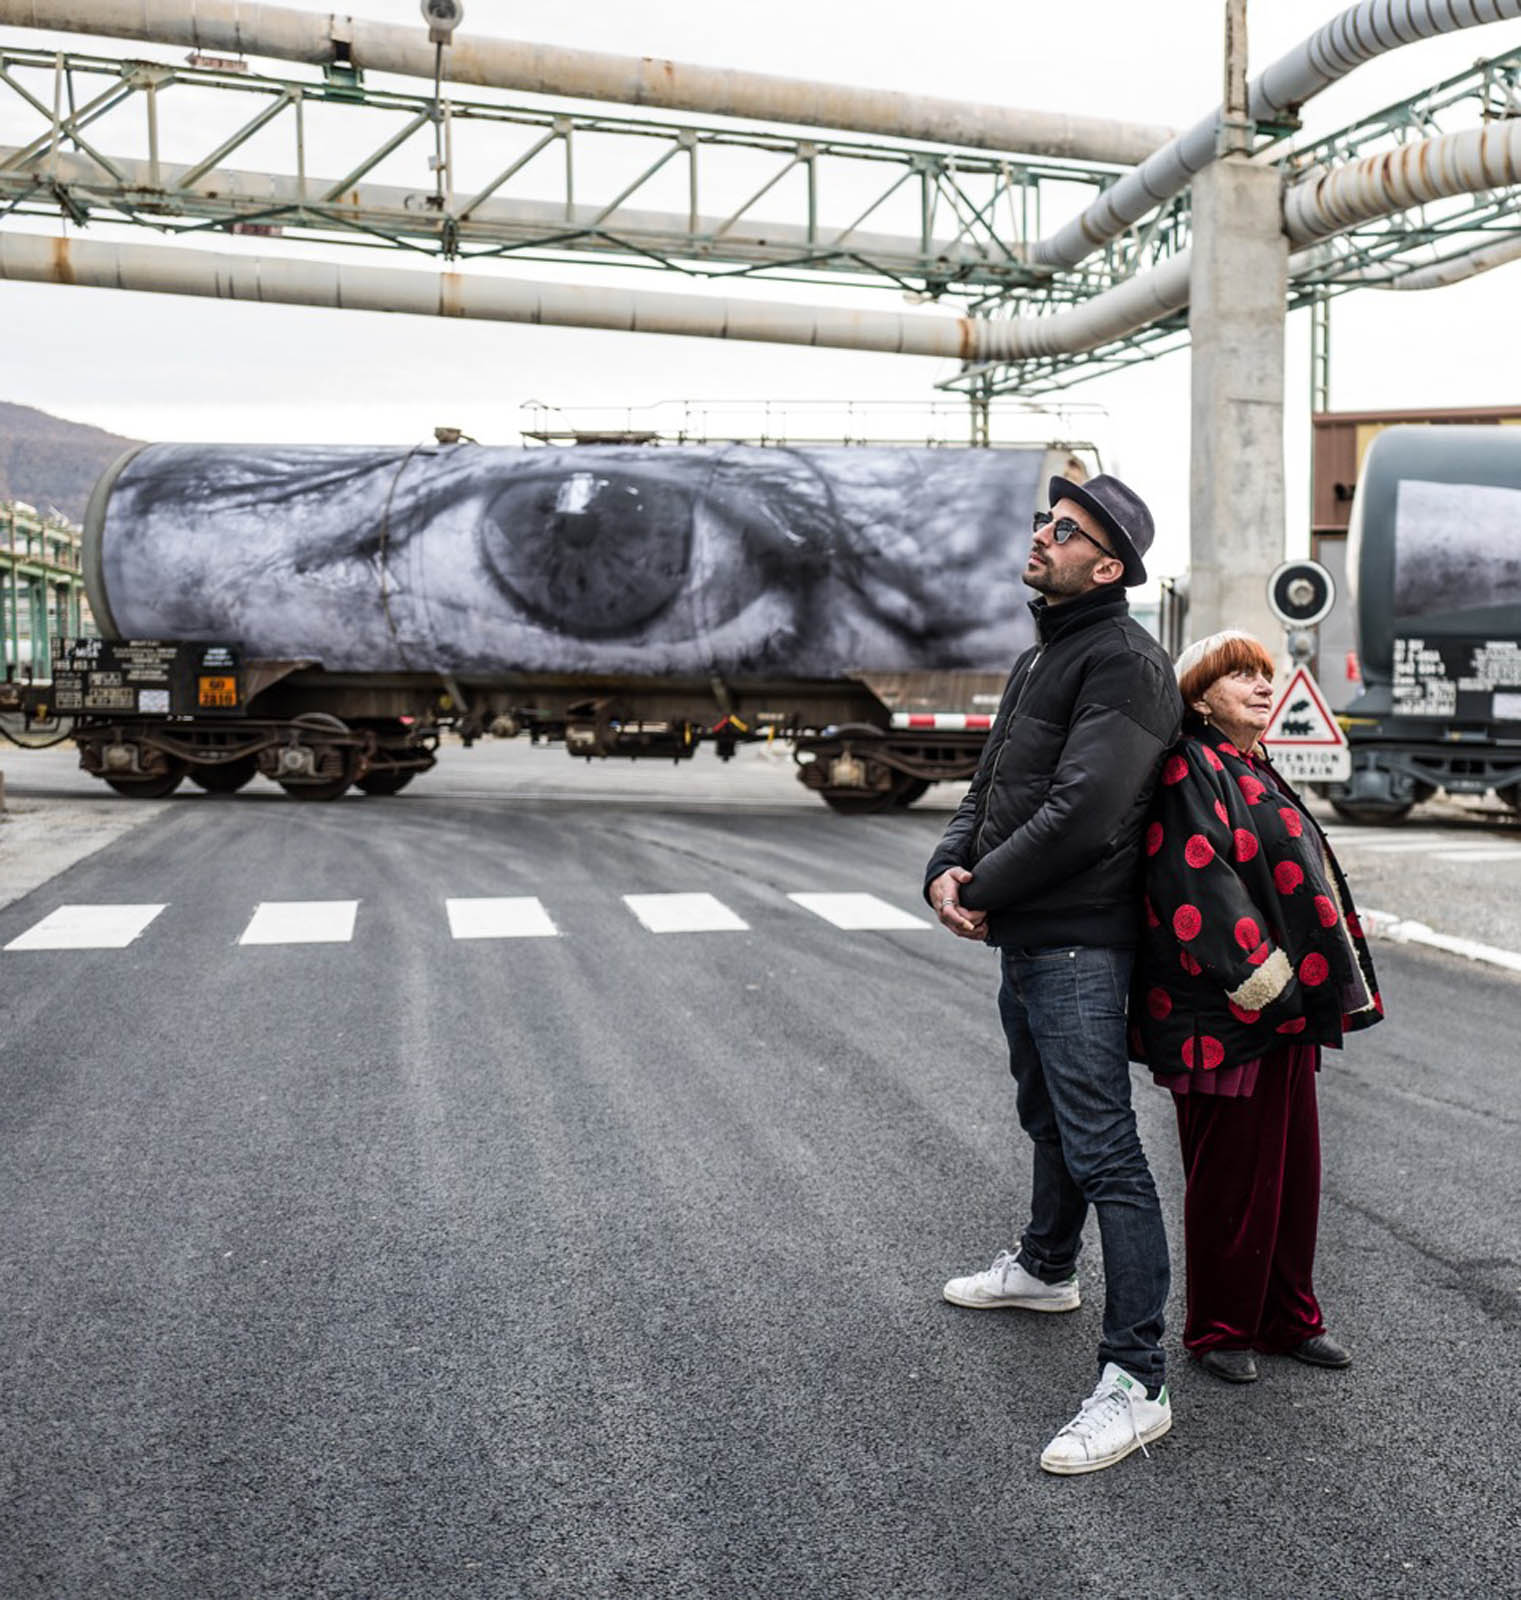 Visages Villages, il documentario di Agnes Varda e Jr in gara per un Oscar | Collater.al 5